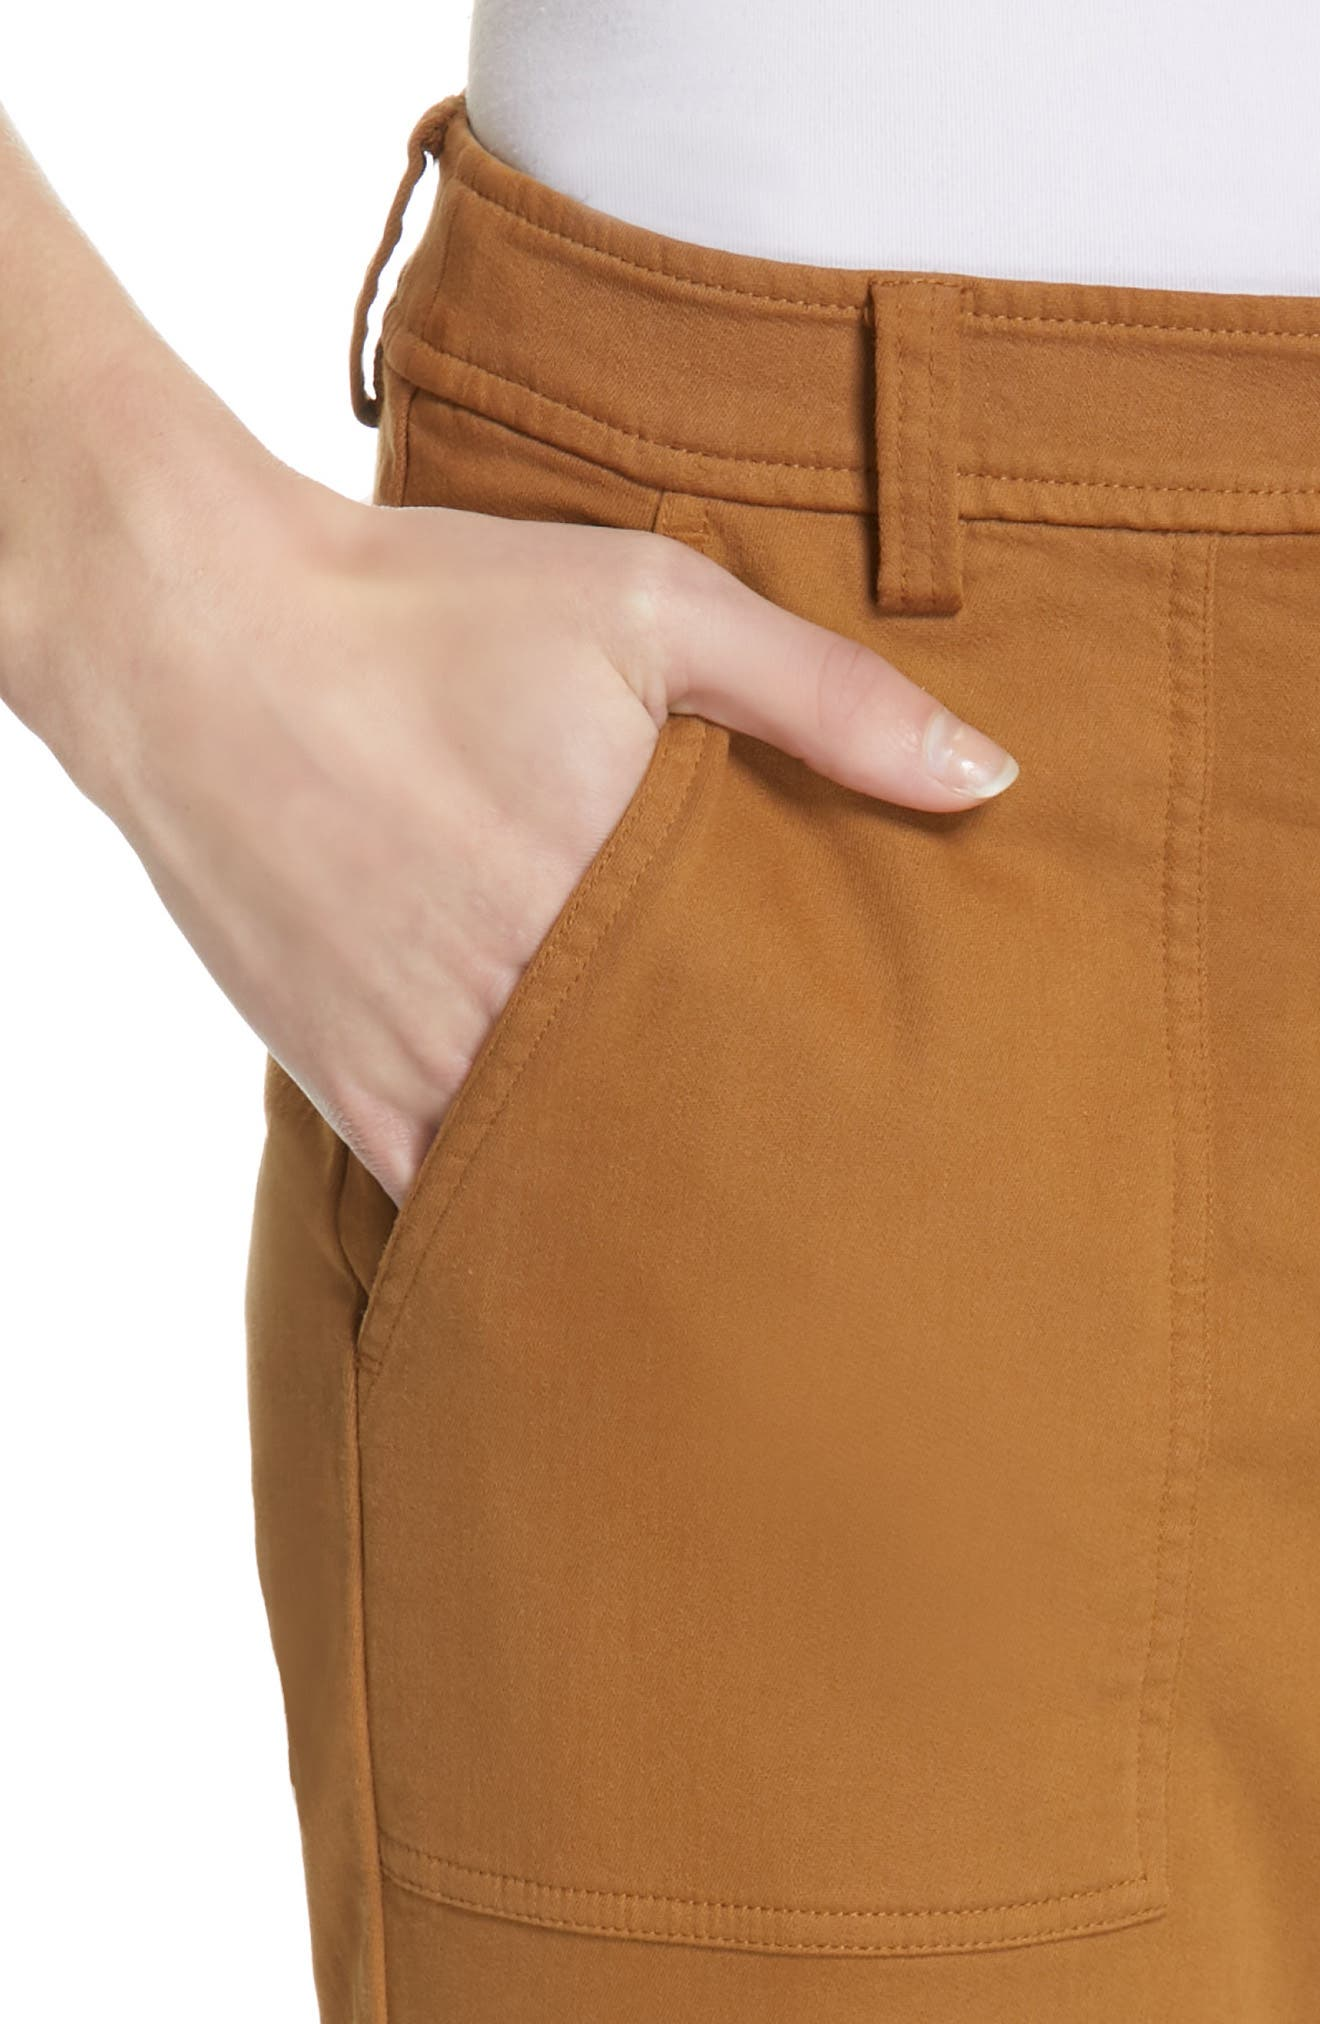 EILEEN FISHER,                             Slim Stretch Cotton Pants,                             Alternate thumbnail 4, color,                             DARK CLAY